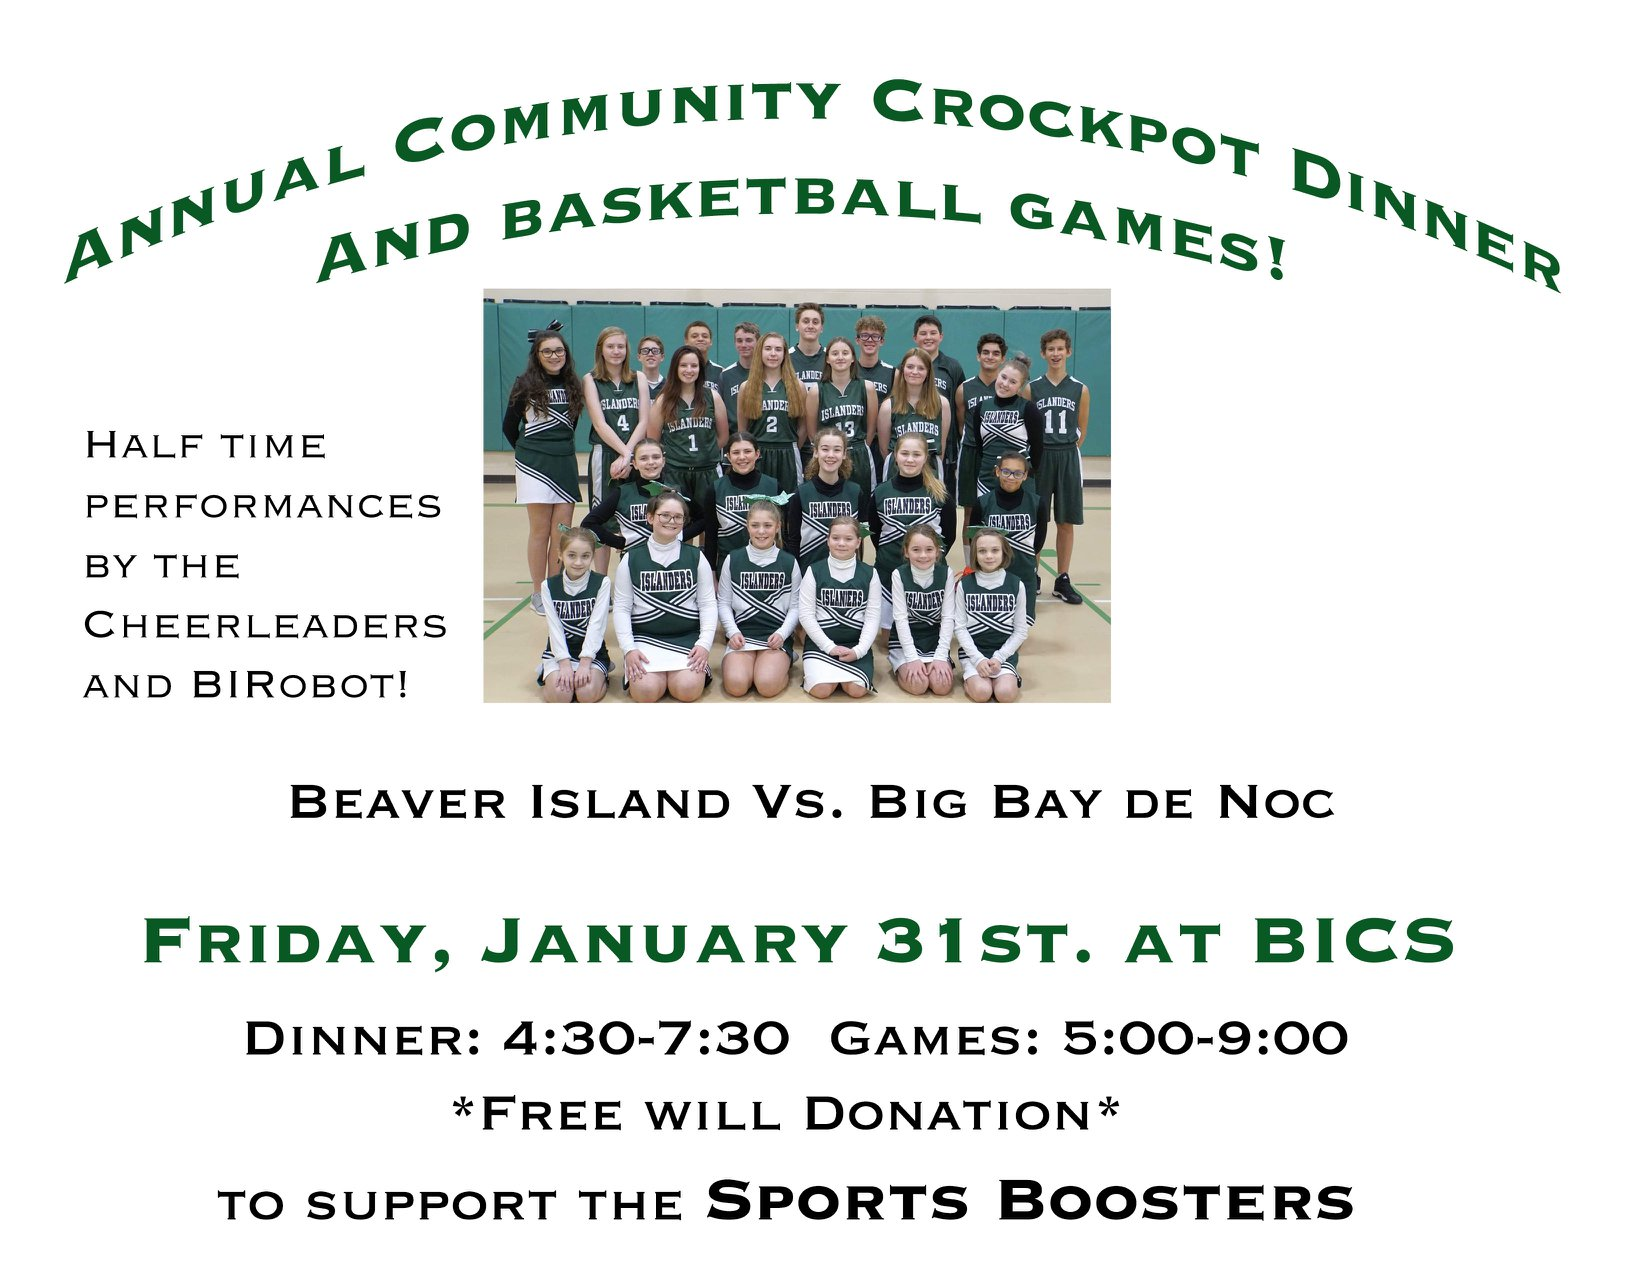 Annual Community Crockpot Dinner @ Beaver Island Community School